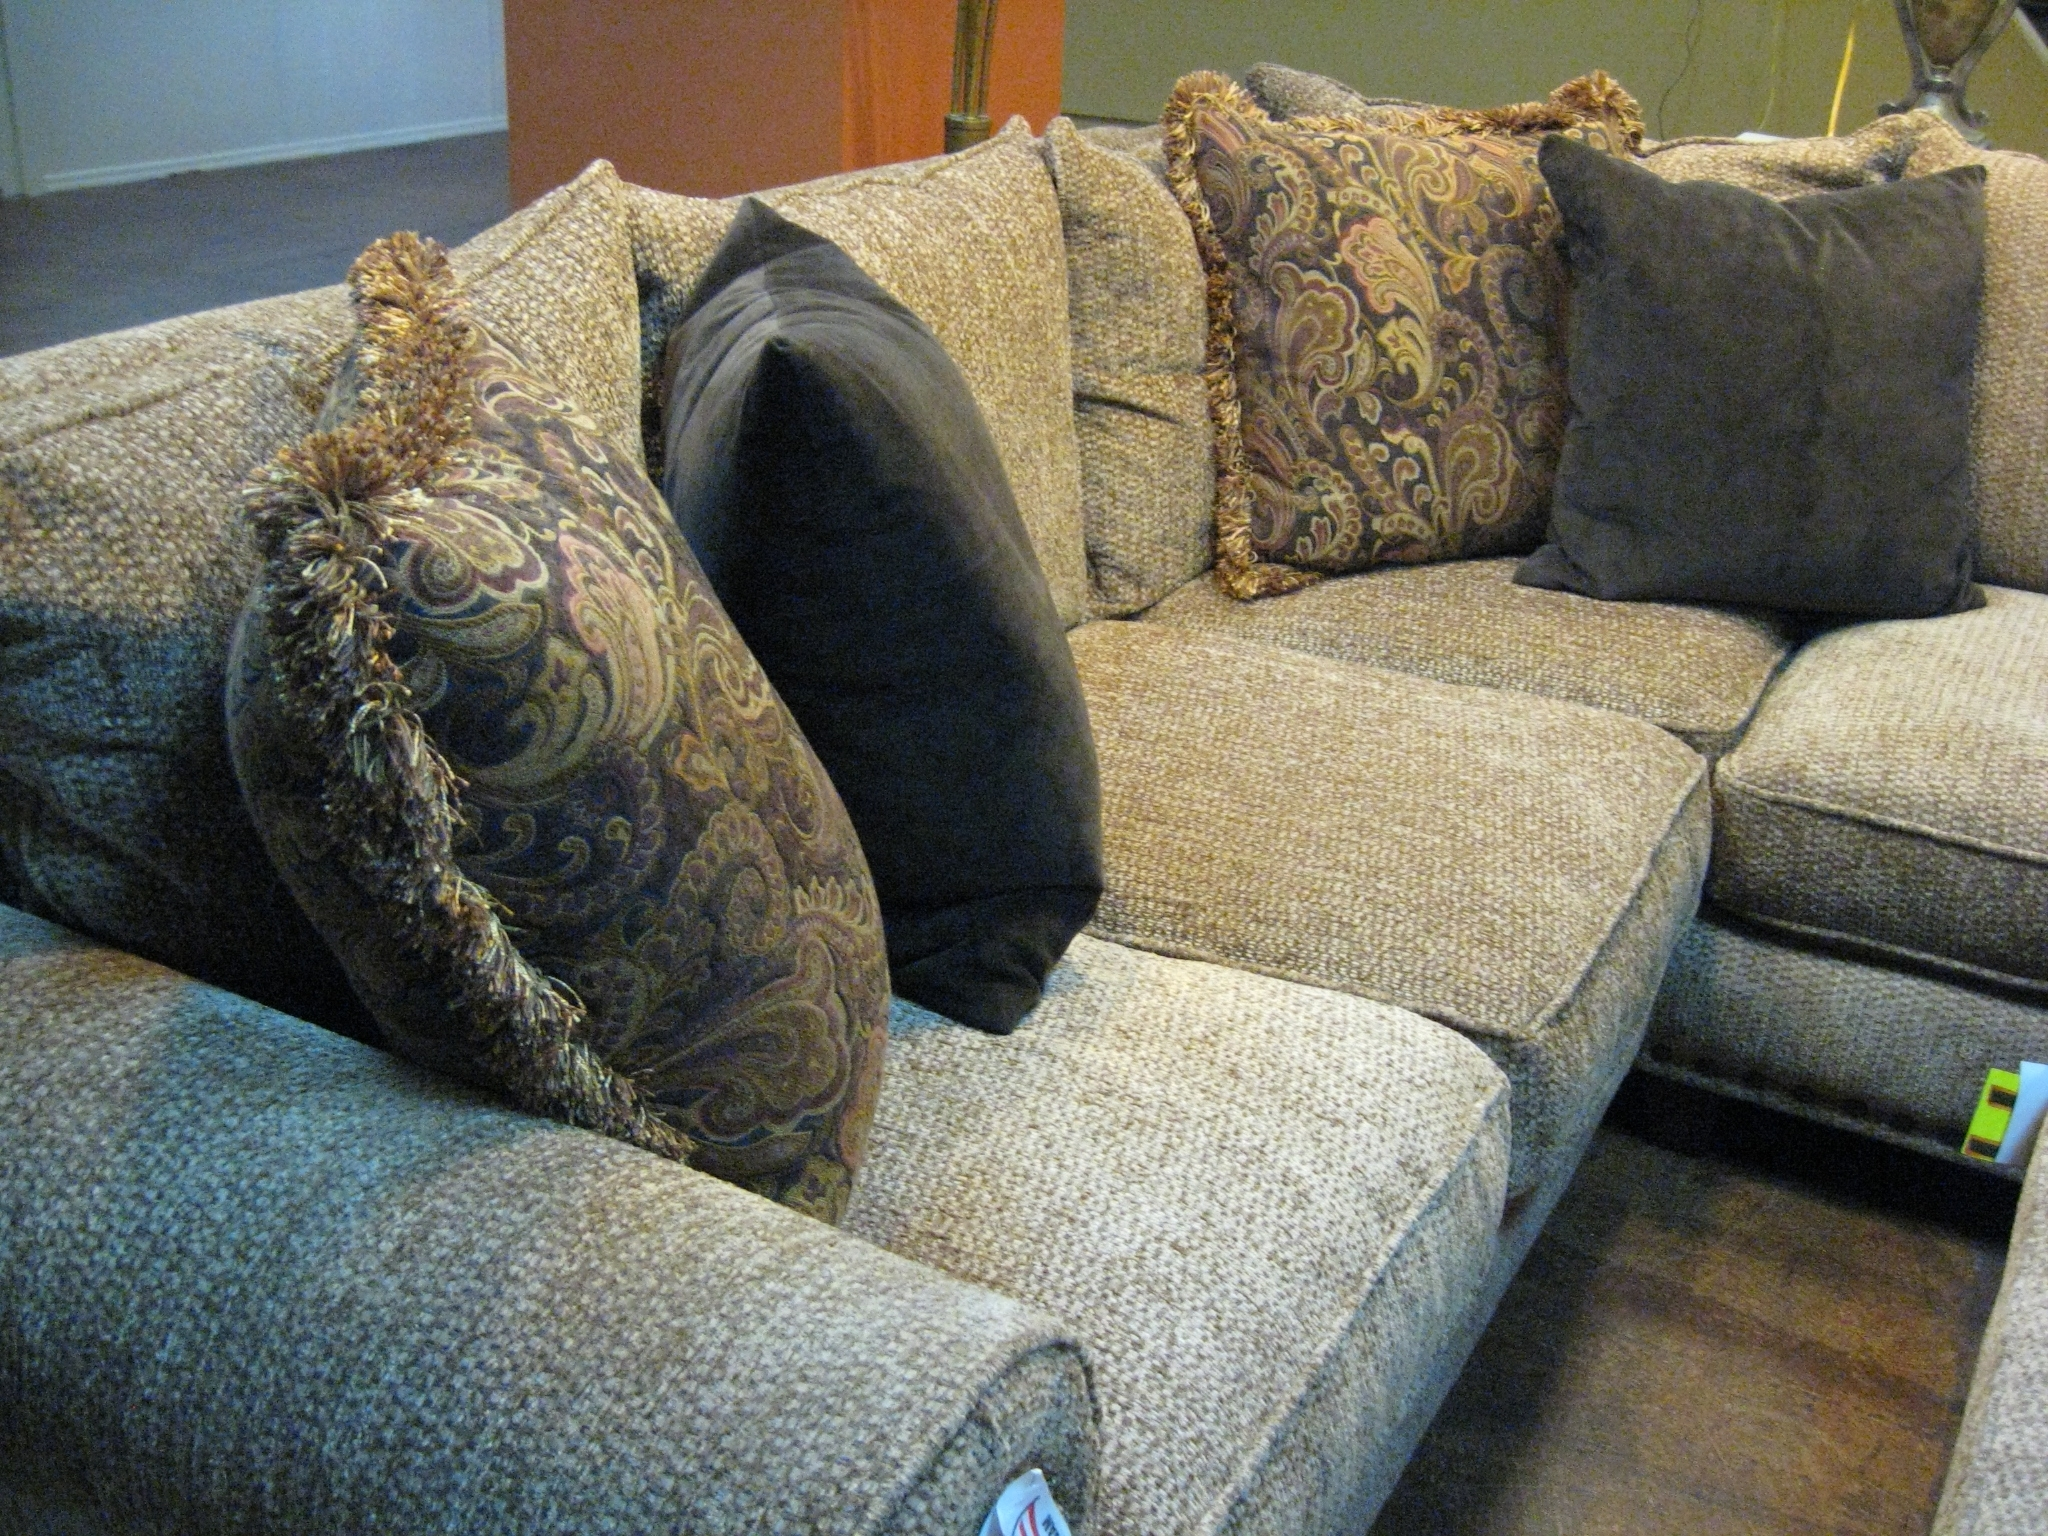 Preferred Robert Michael Sectional Sofa Phoenix Arizona Discount Outlet Within Down Sectional Sofas (View 12 of 15)